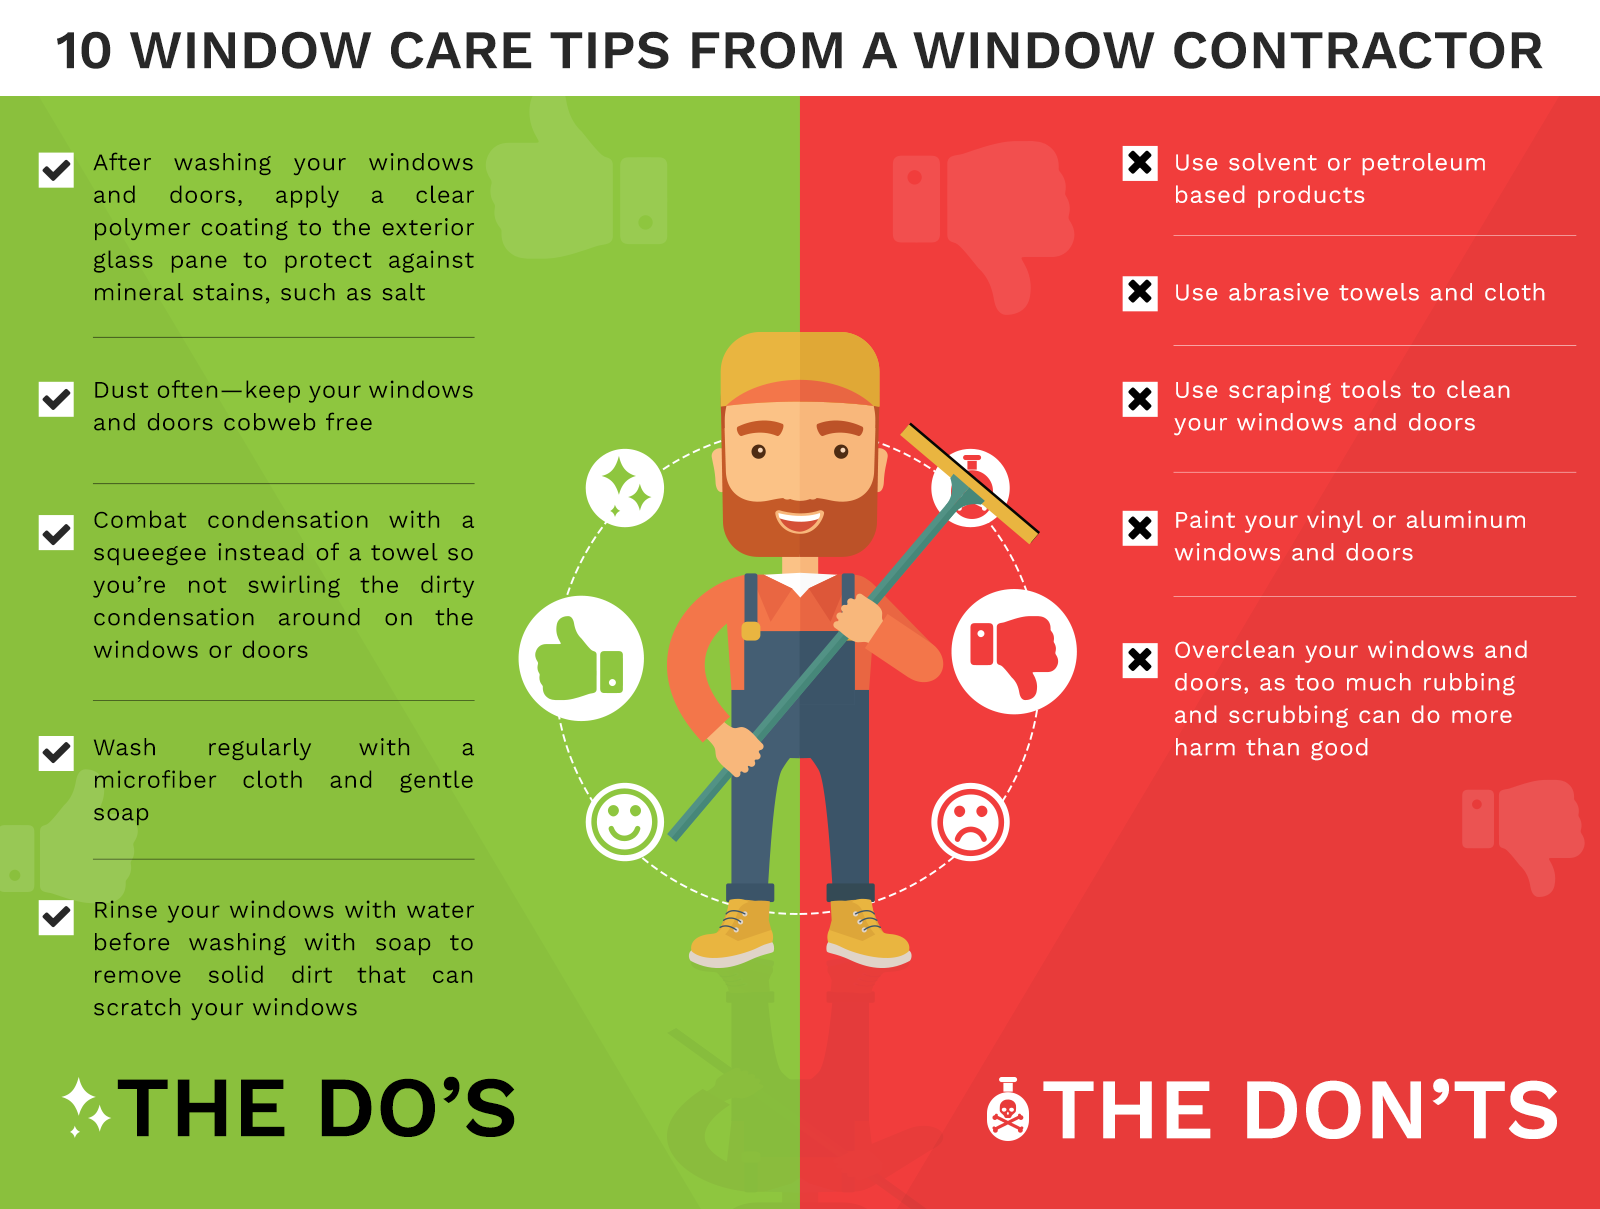 Impact Window Care from a Window Contractor